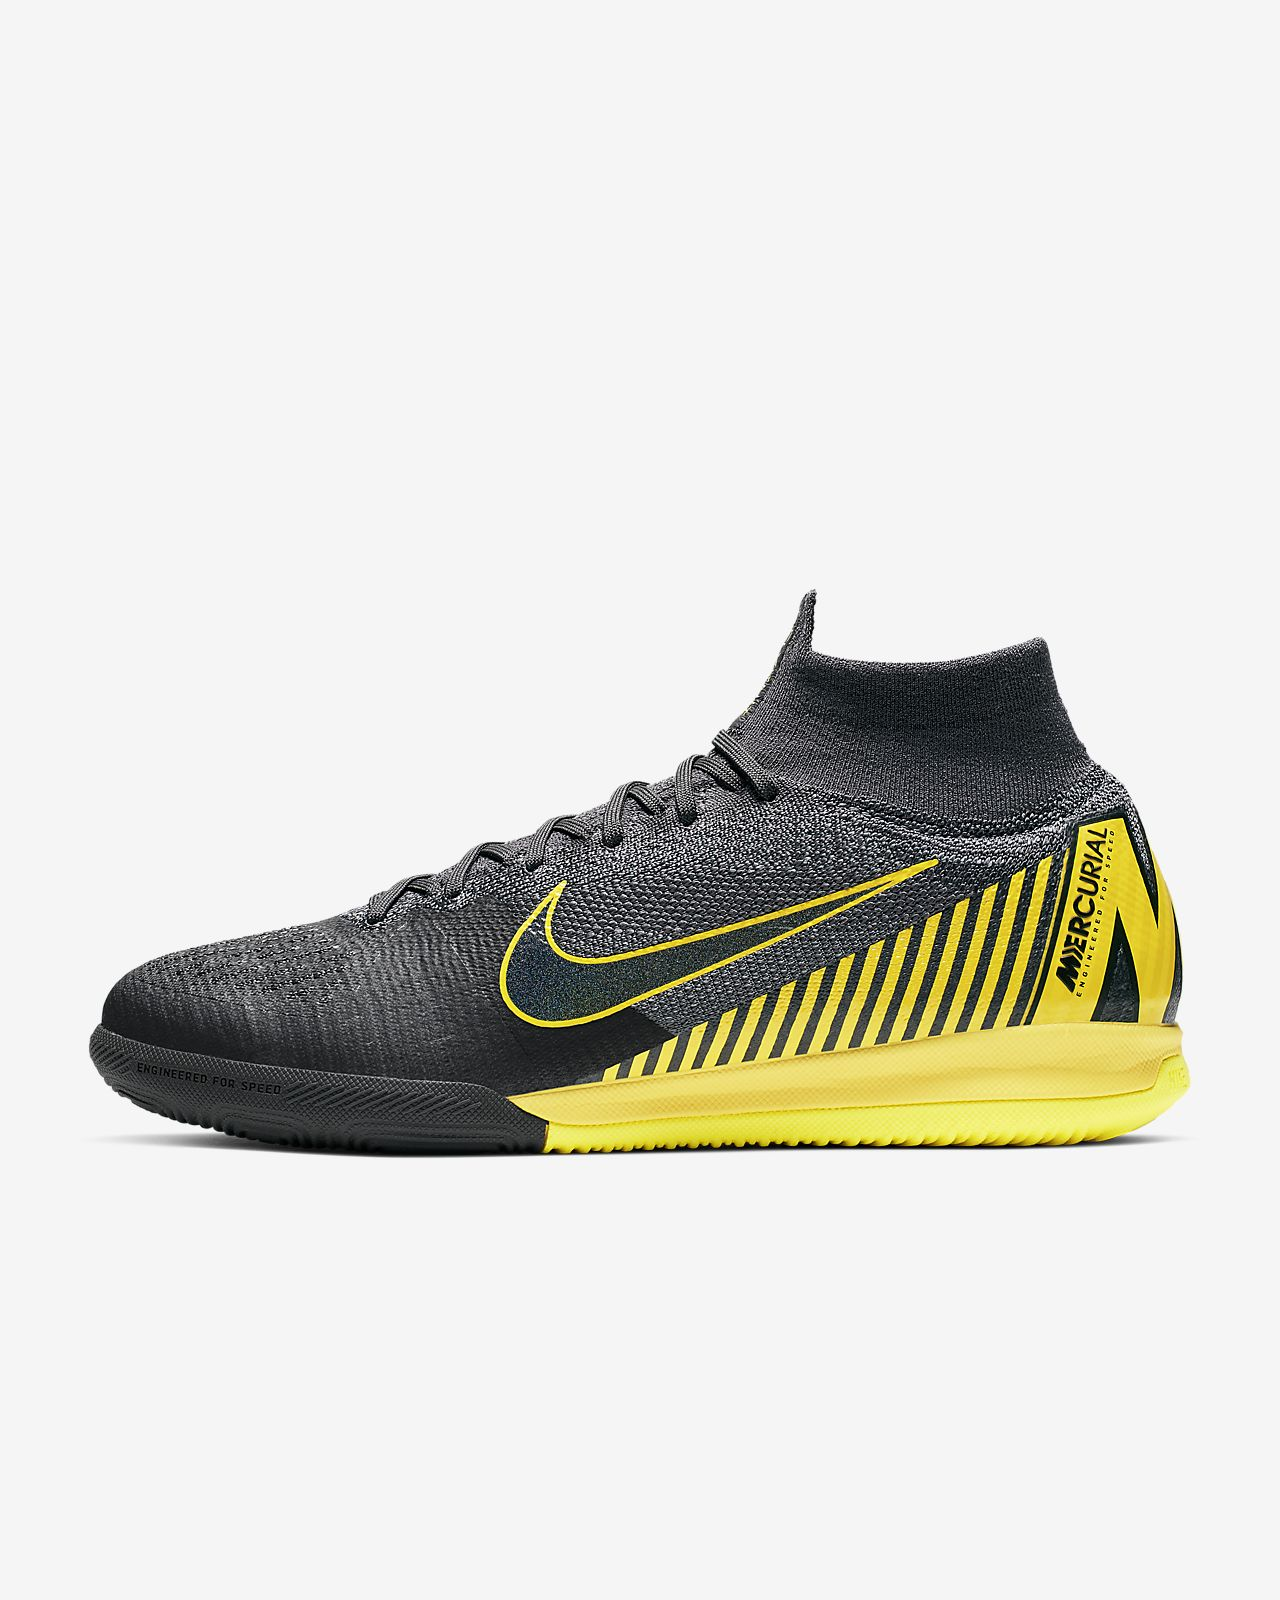 sneakers for cheap f88ee 67108 Nike SuperflyX 6 Elite IC Game Over